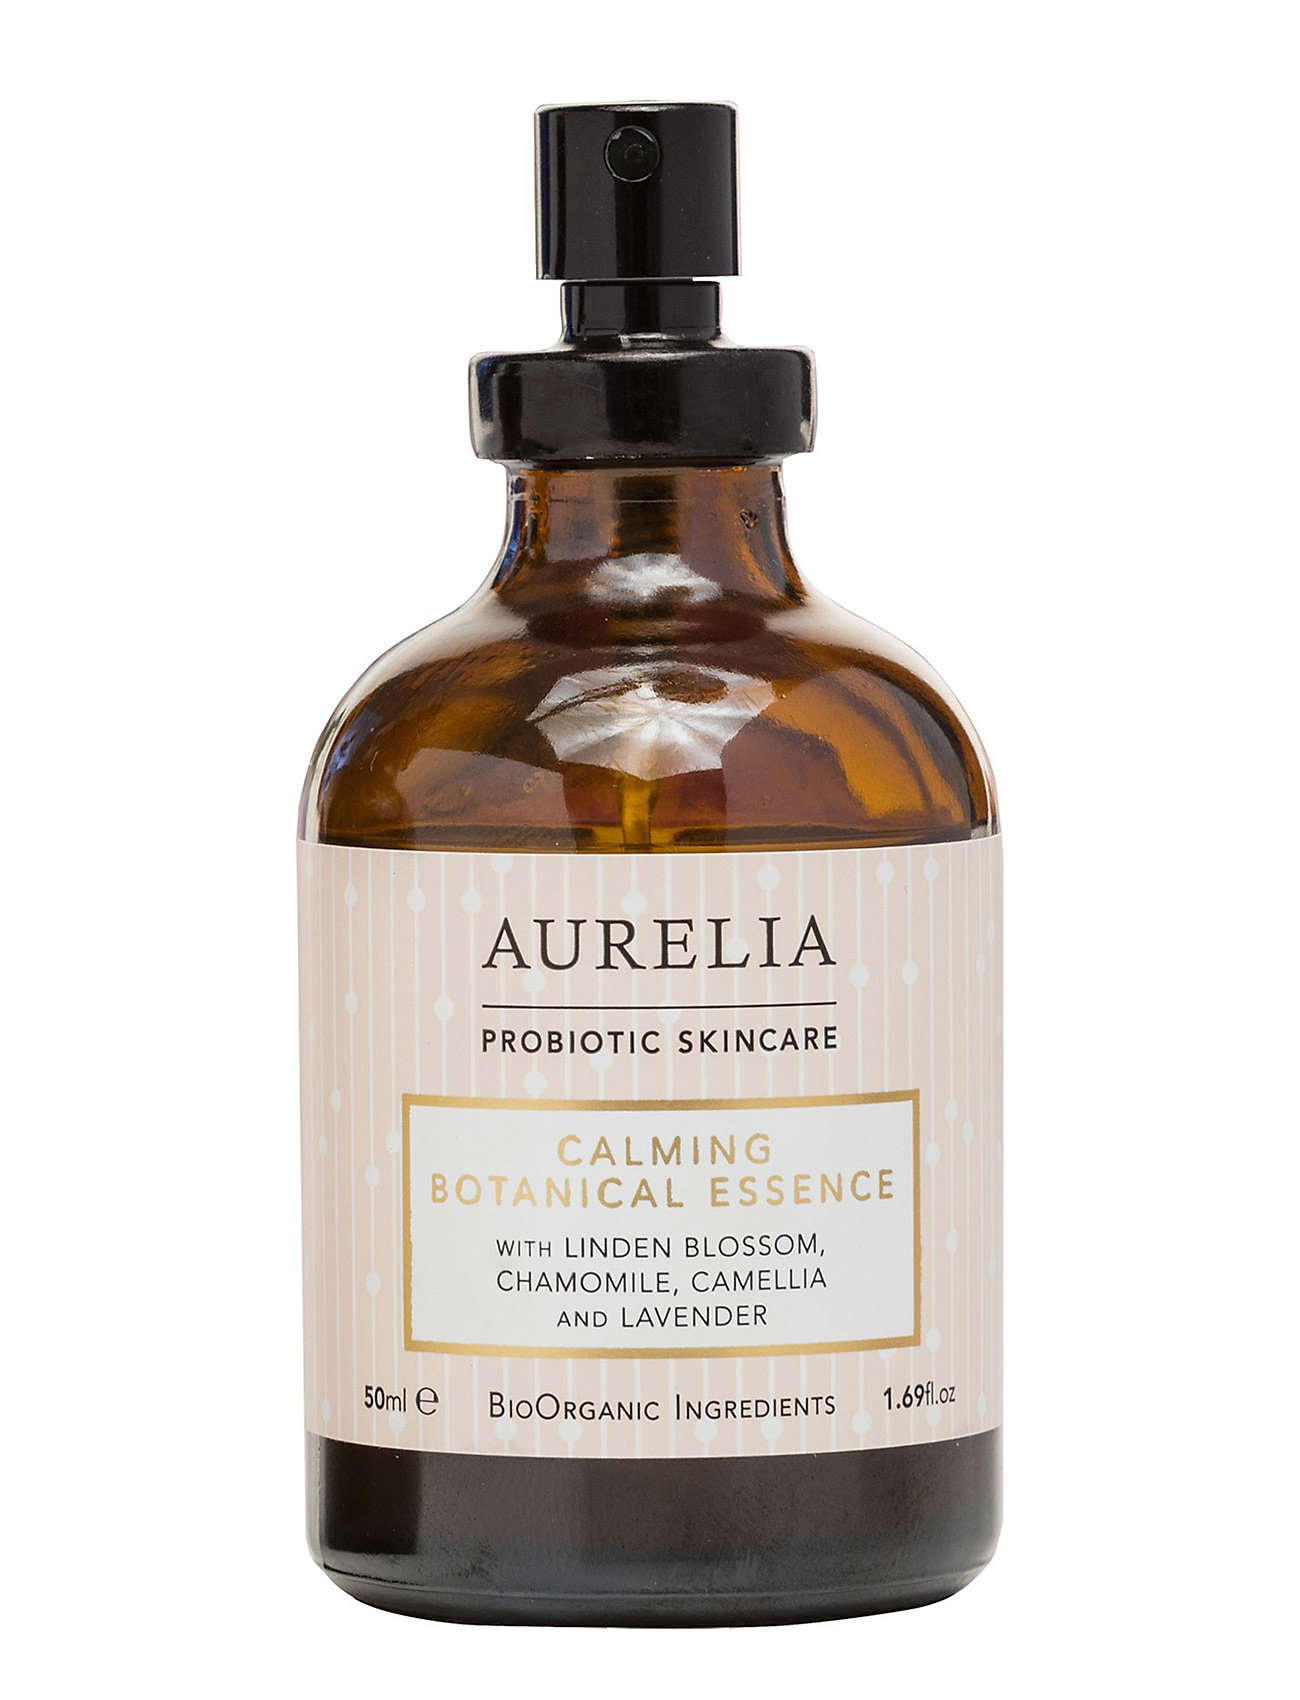 Image of Calming Botanical Essence 50 Ml. Serum Ansigtspleje Nude Aurelia Probiotic Skincare (3067482219)